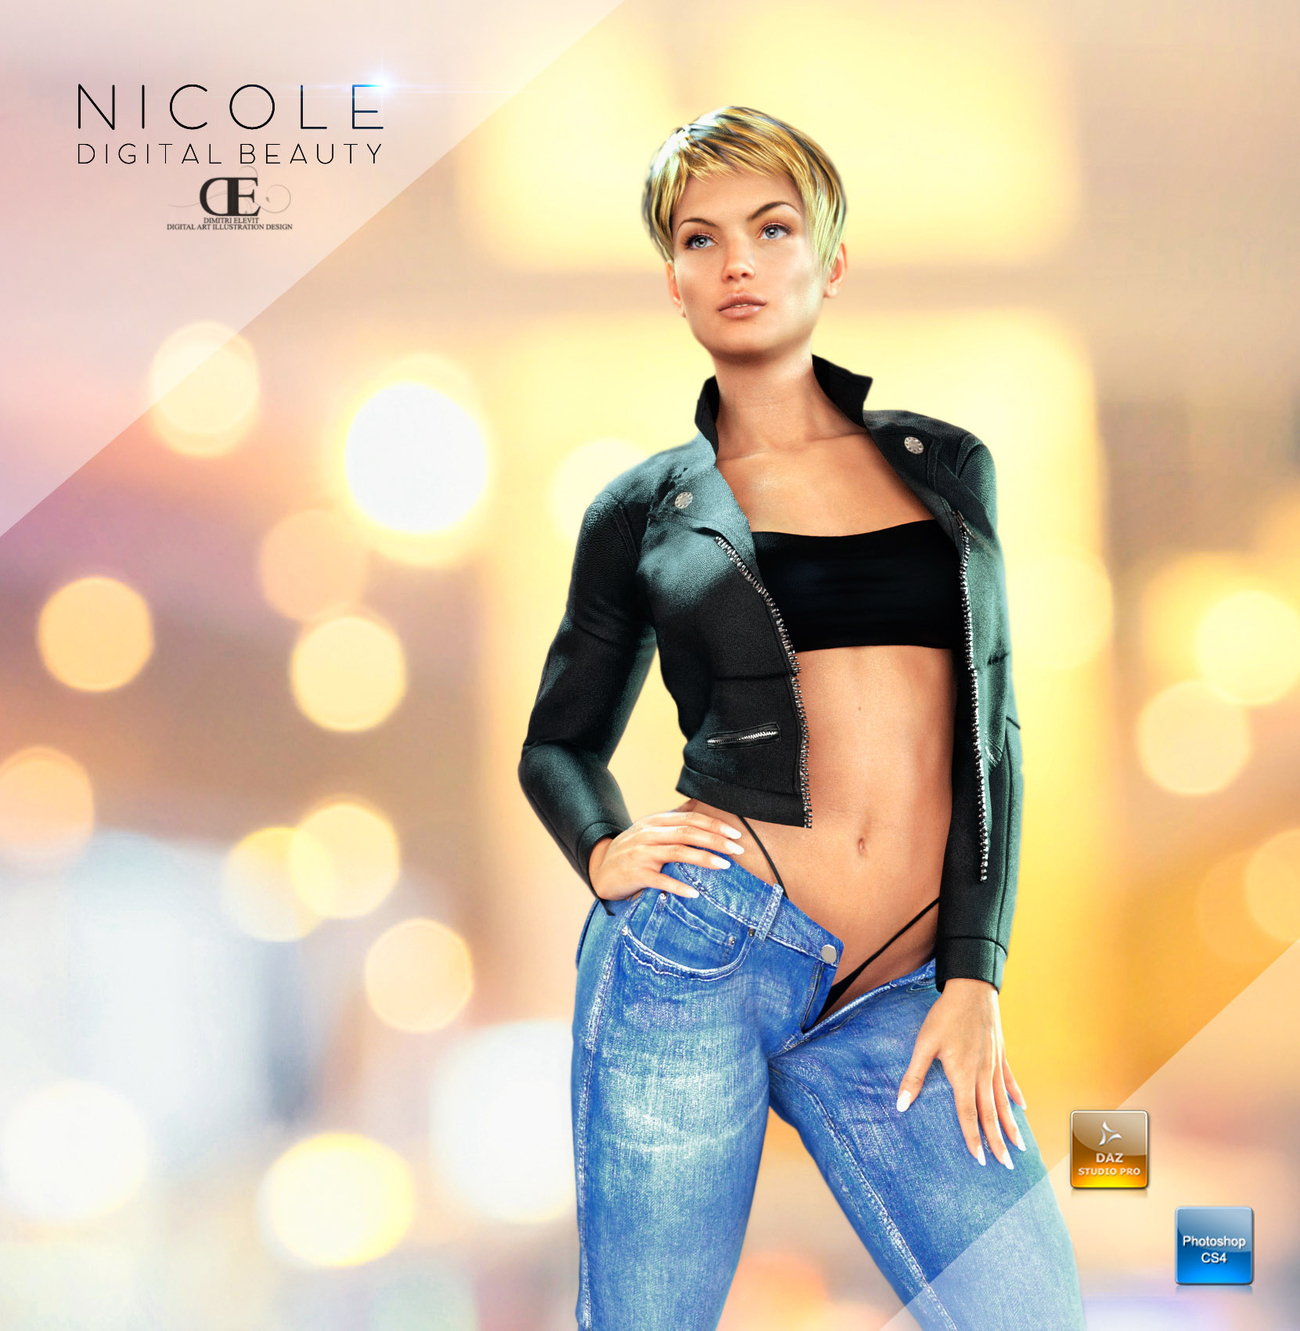 Nicole digital beauty 2 by DimitriAraujo